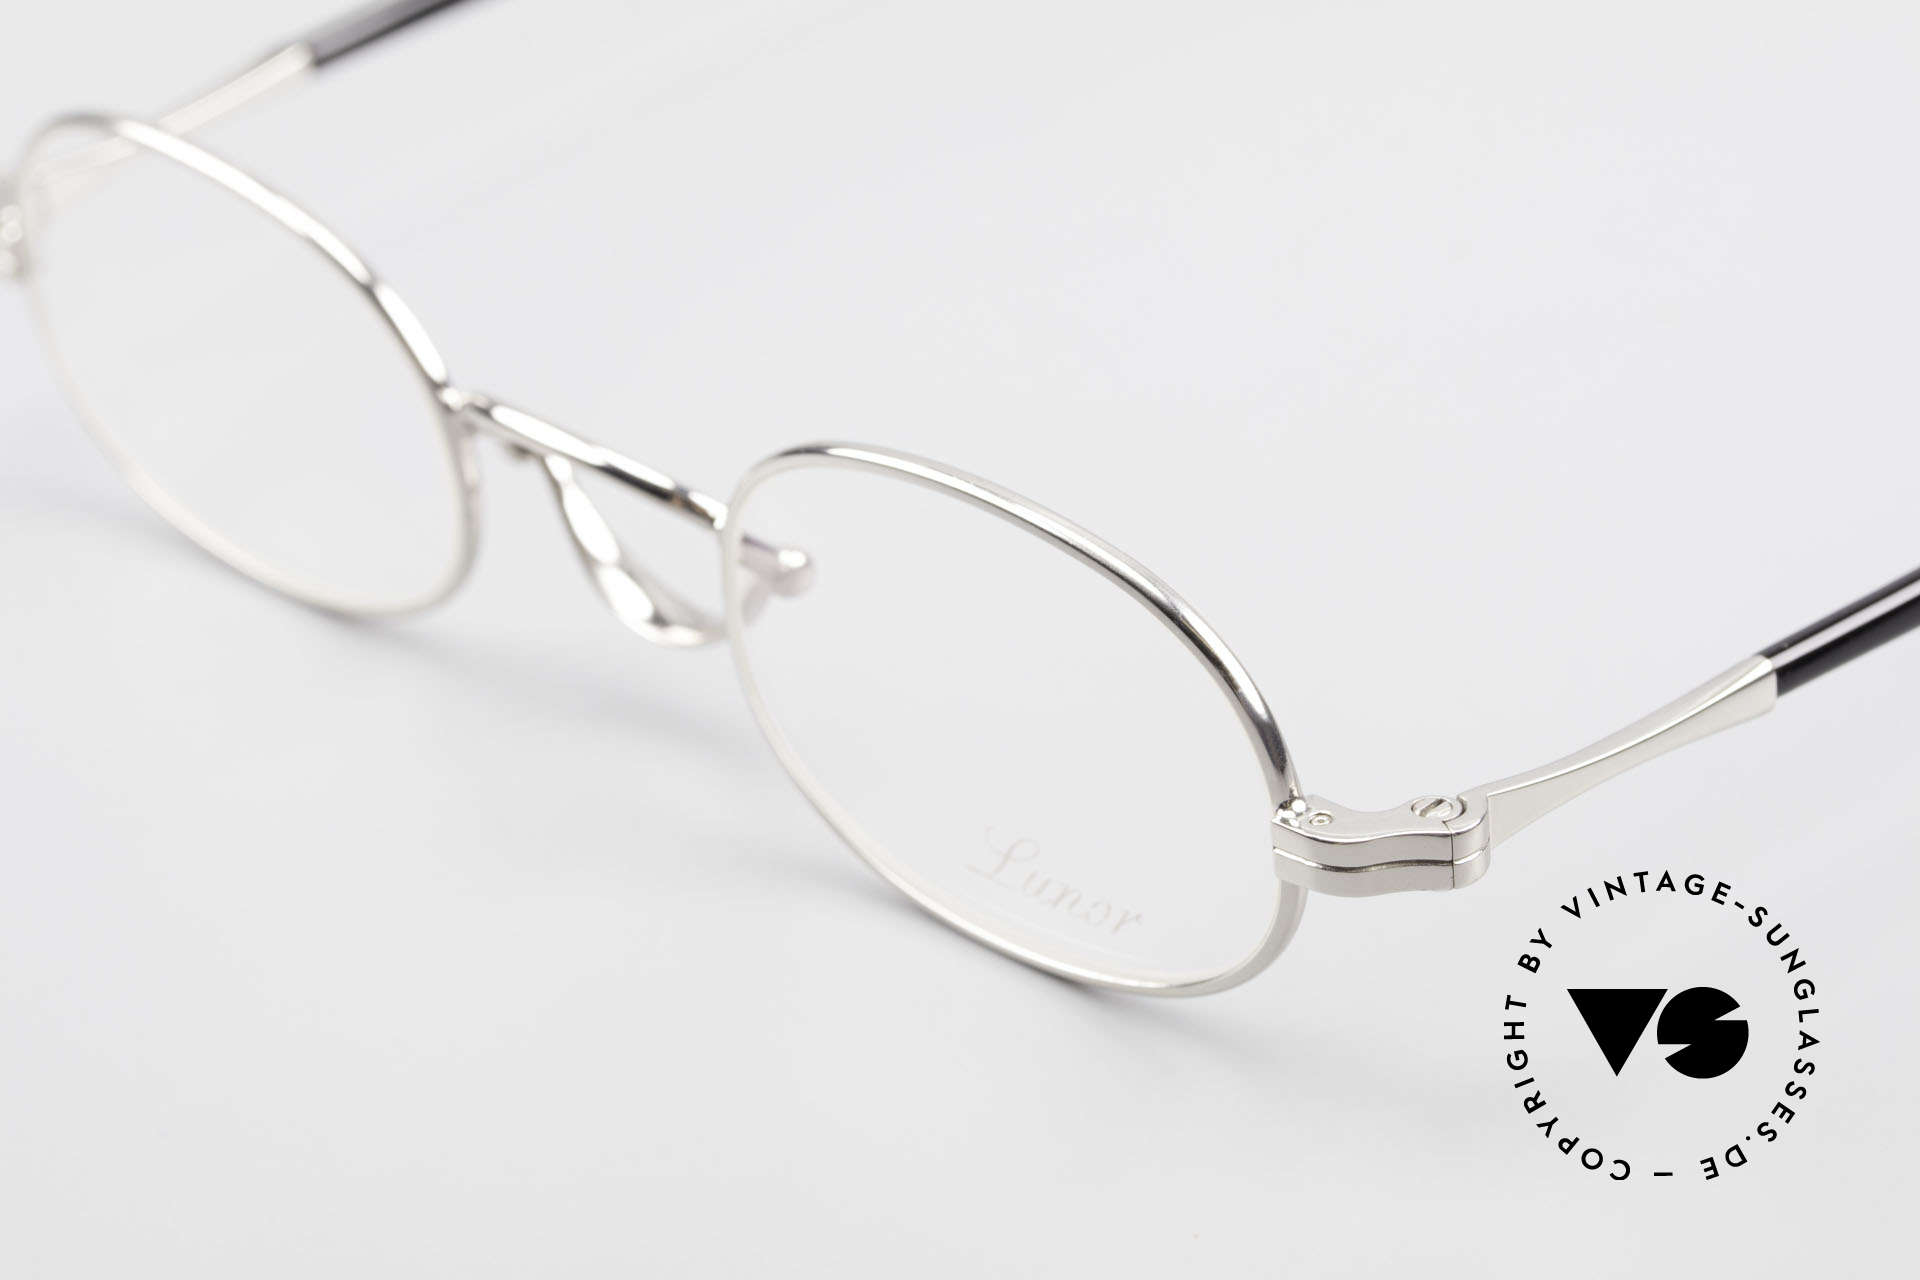 Lunor Swing A 36 Oval Swing Bridge Vintage Glasses, swing bridge = homage to the antique glasses from 1900, Made for Men and Women